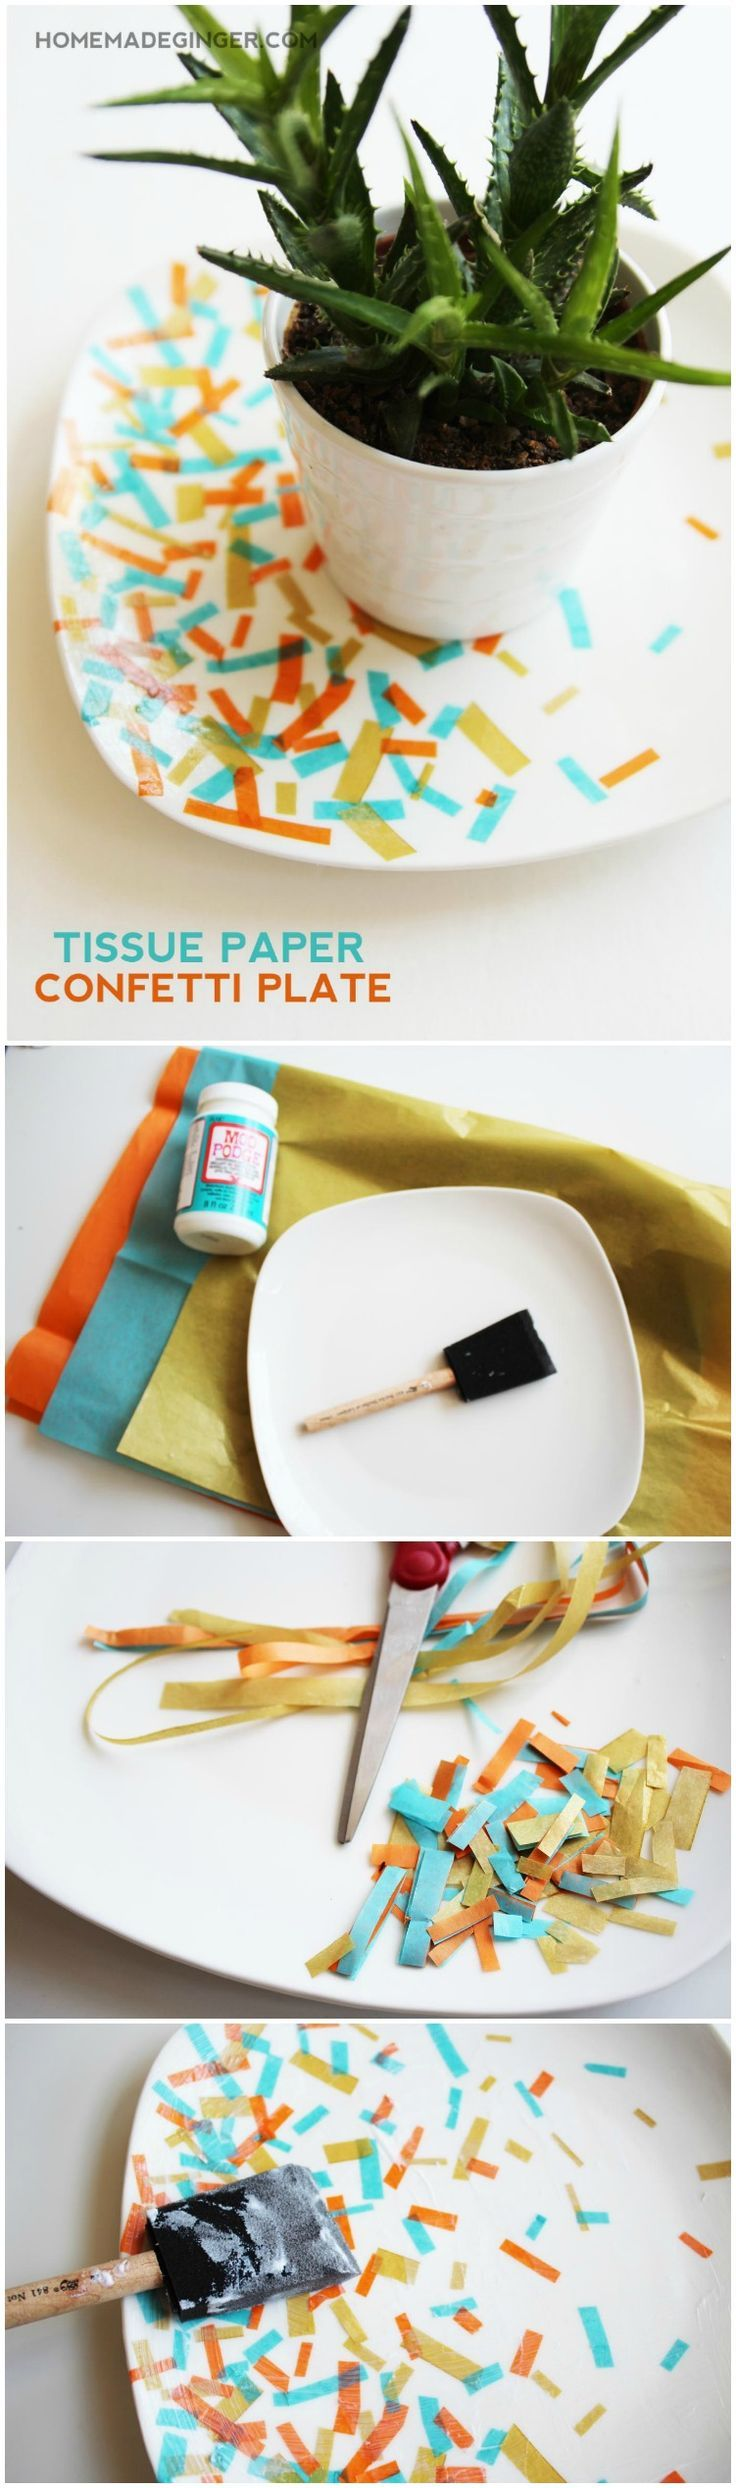 6066 best images about dollar store crafts on pinterest for Craft paper dollar tree